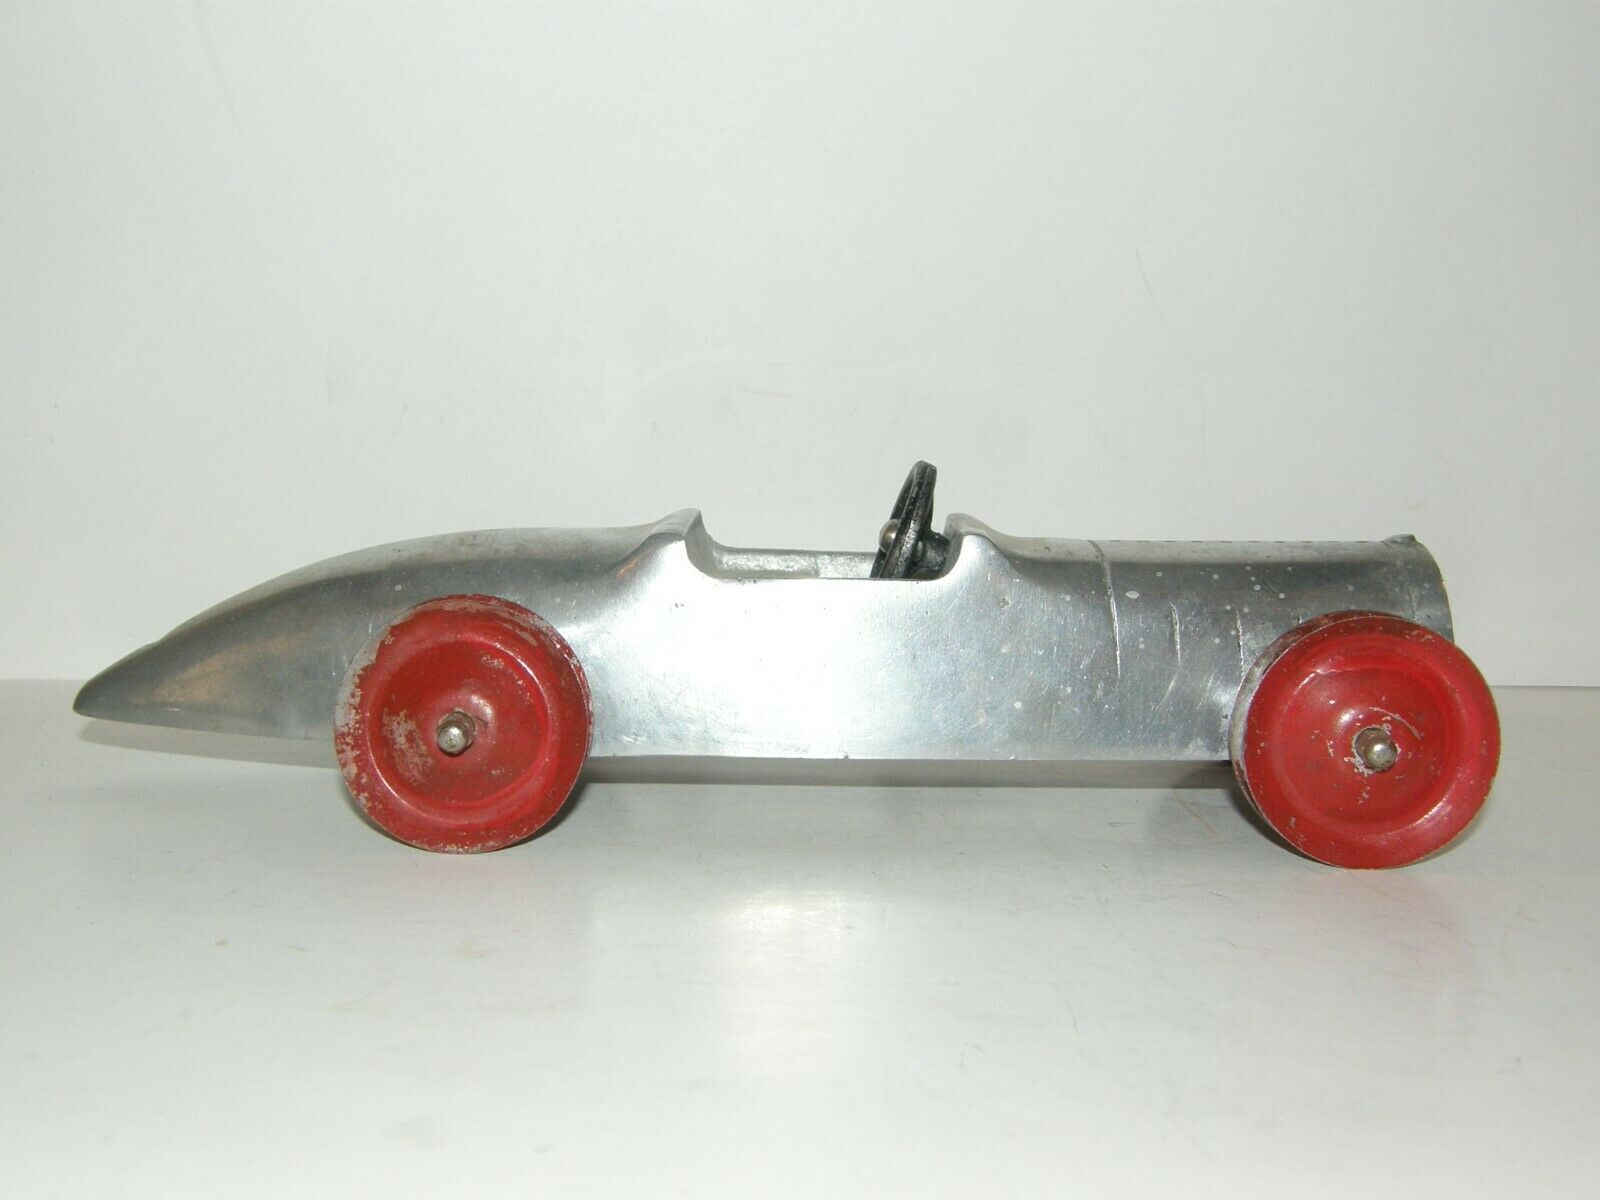 CLEVELAND TOY  CO. BOAT TAIL RACER CAST ALUMINUM 1930's era  contre authentique